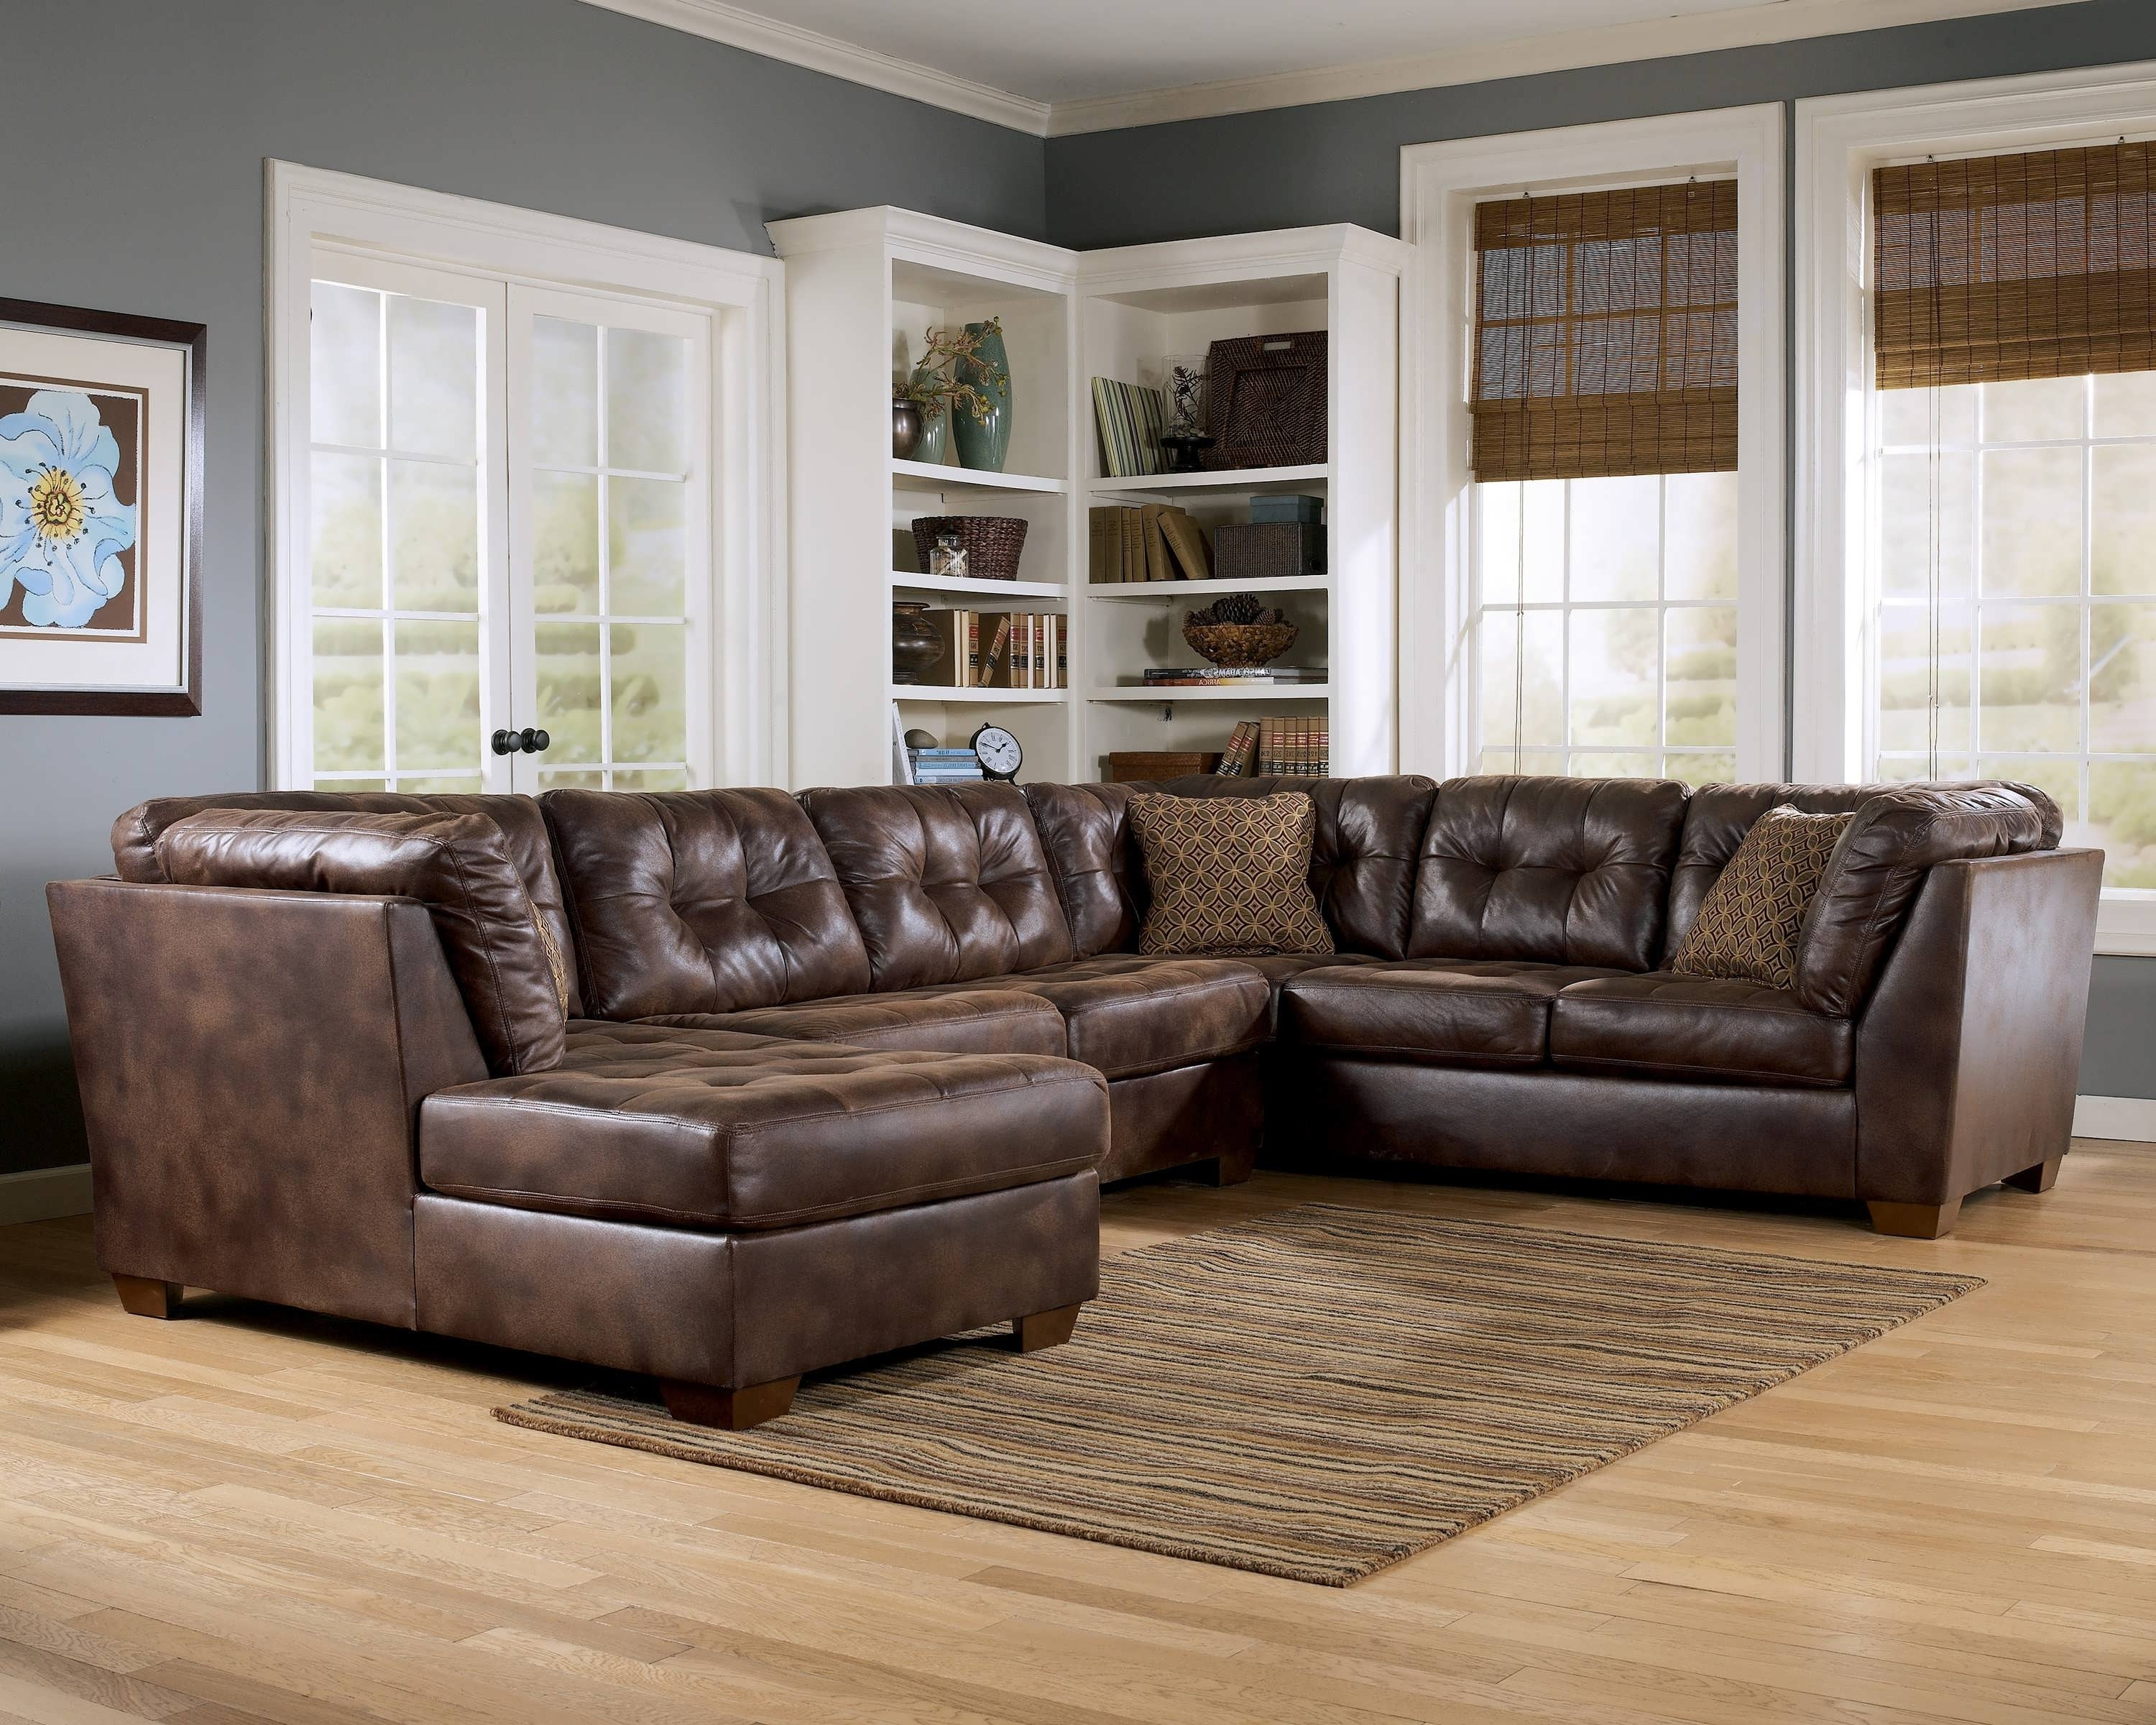 Trendy Sofa Leather Sectional Sofas Collection Of Brown Black Couch For Throughout Memphis Sectional Sofas (View 19 of 20)